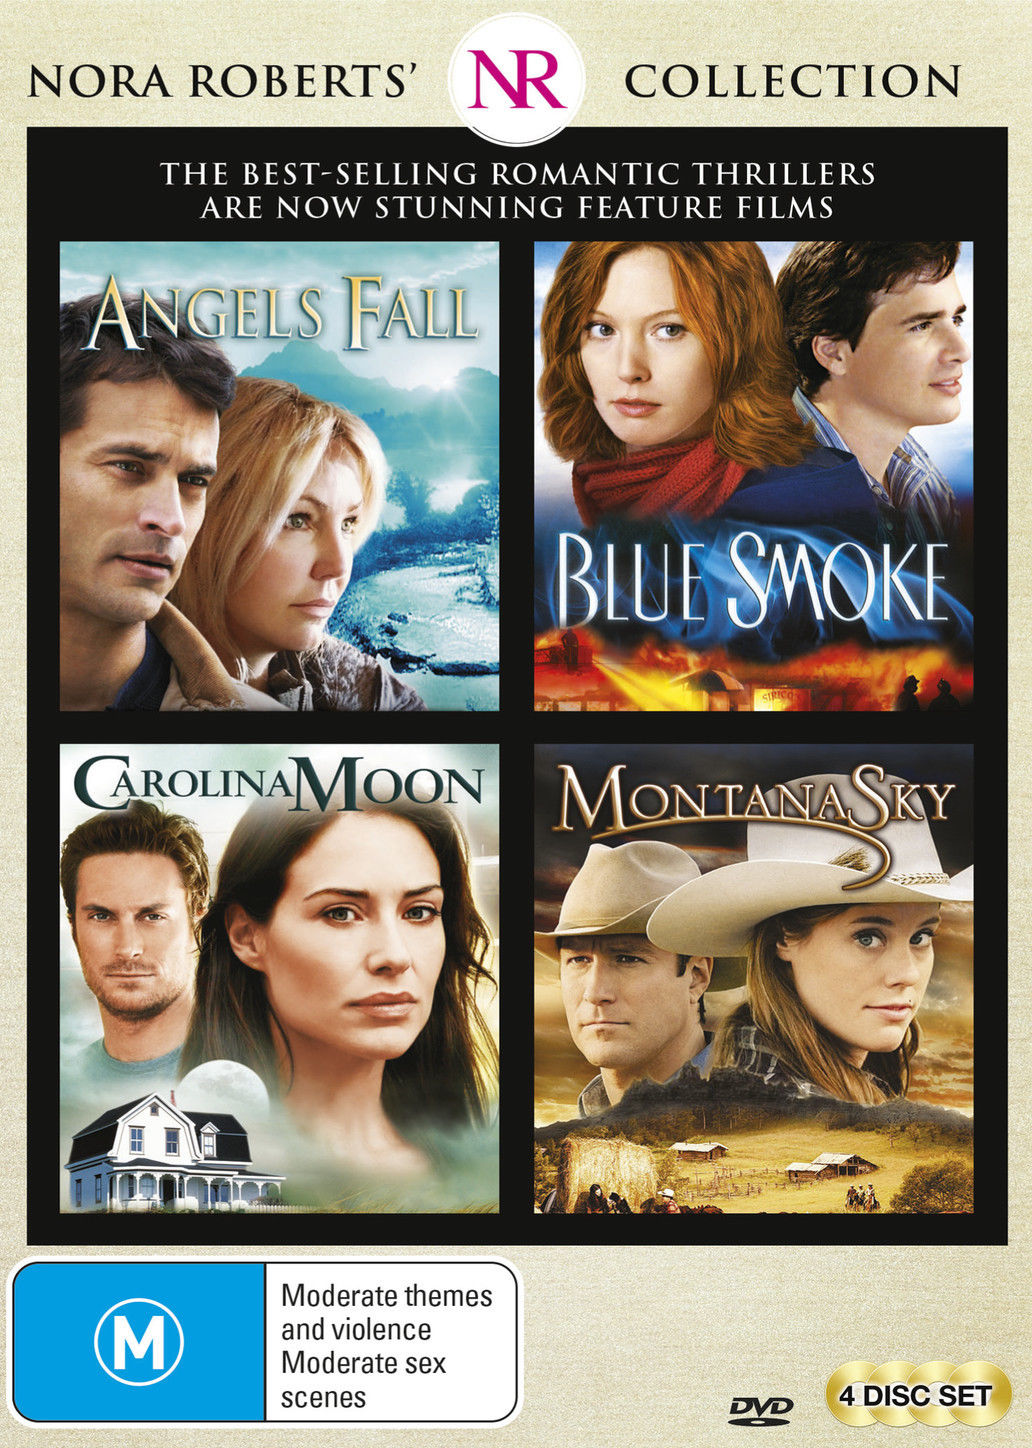 Nora Roberts Collection (Angels Fall / Blue Smoke / Carolina Moon / Montana Sky) DVD